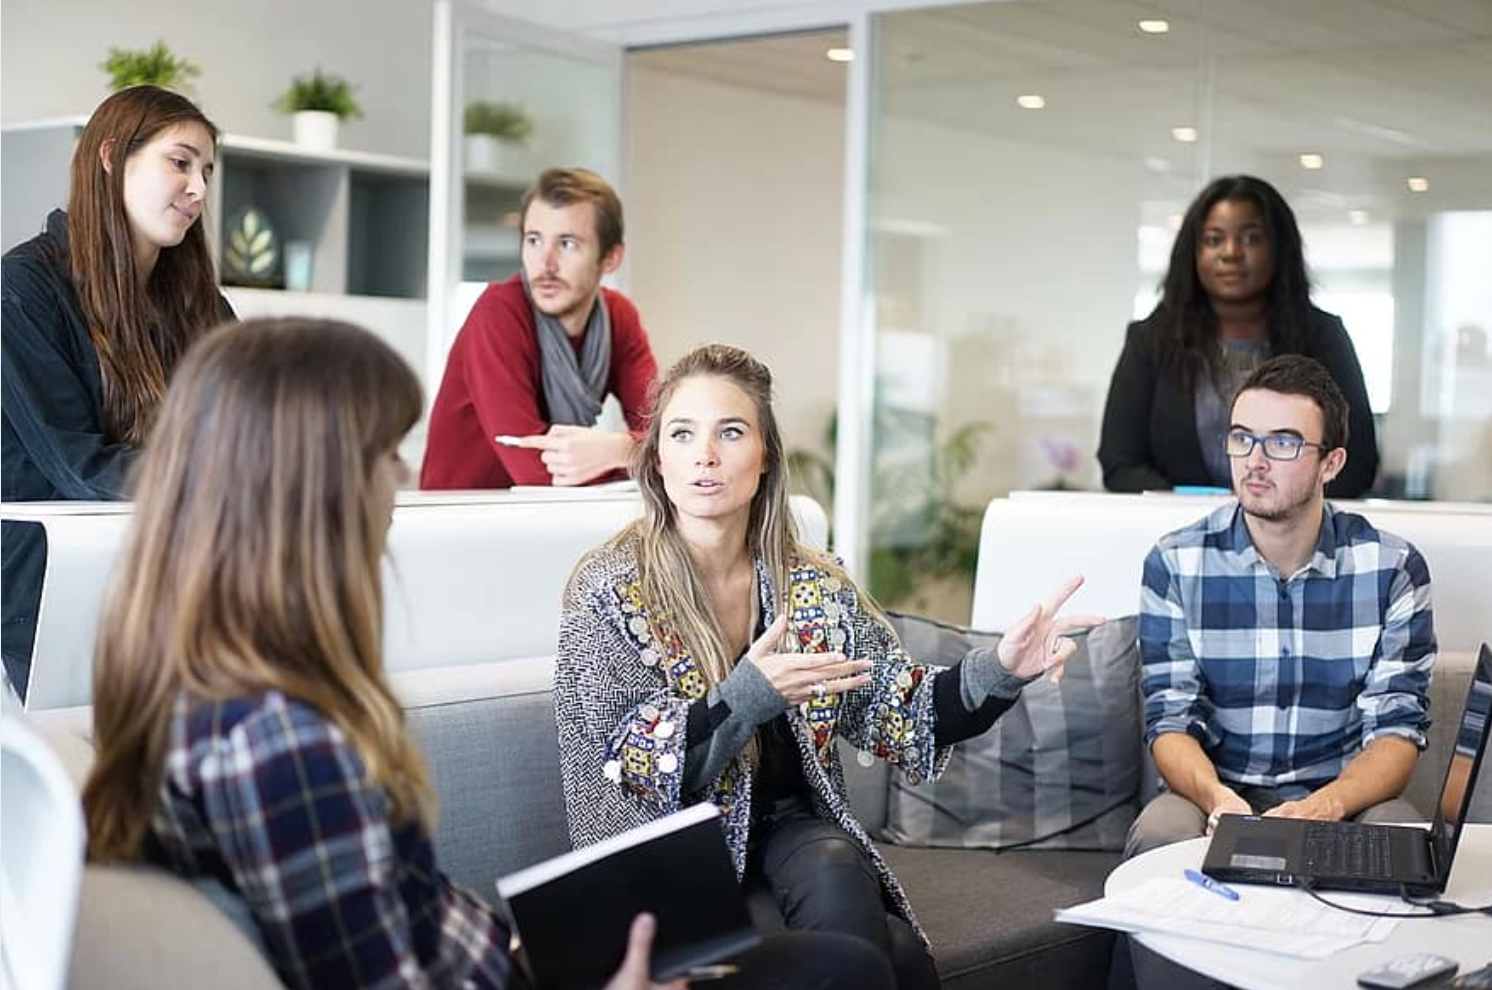 How to improve team communication and share information effectively